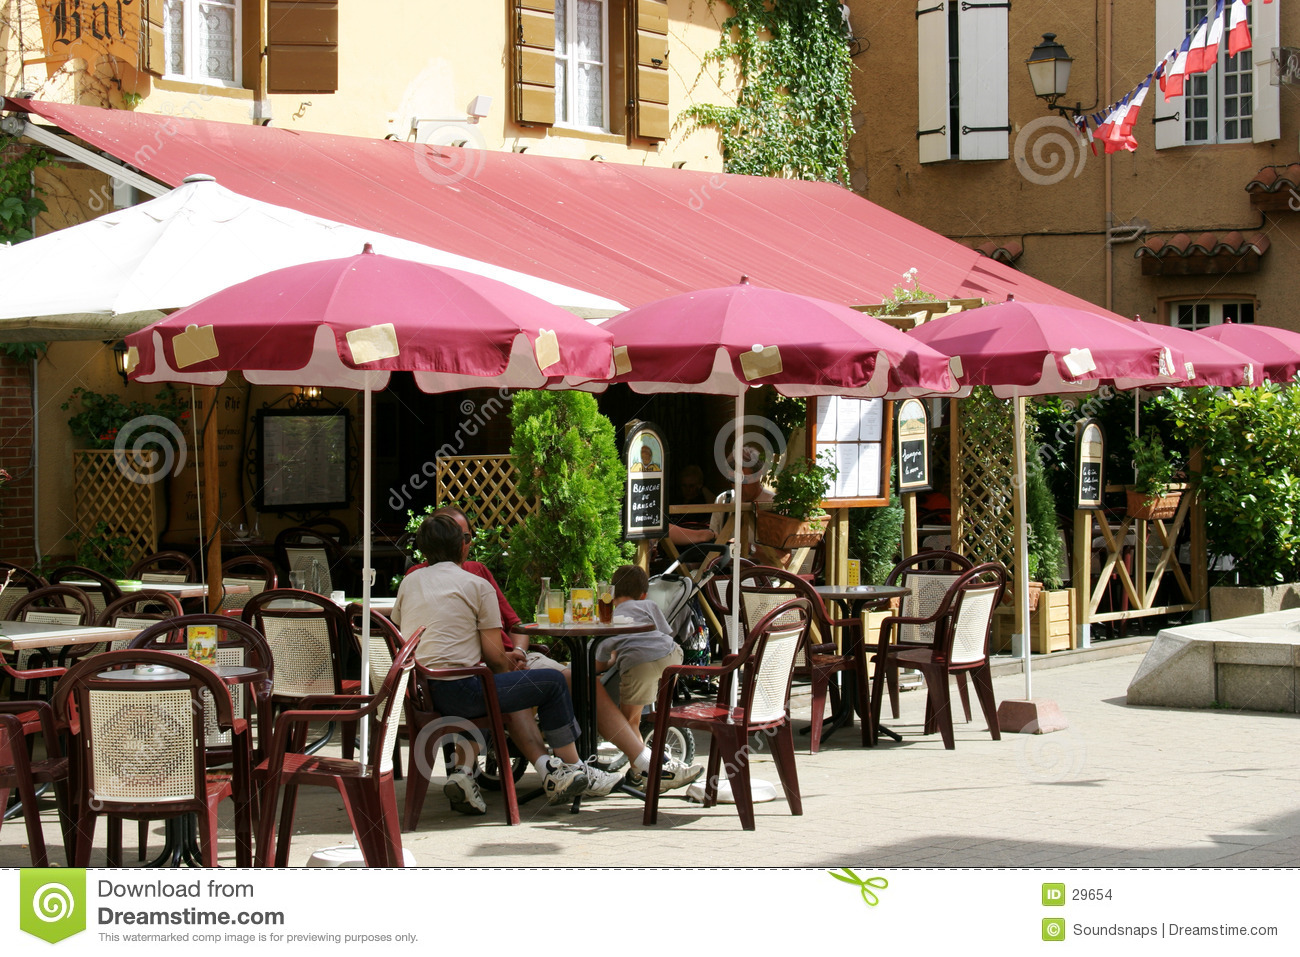 French Cafe in the sun